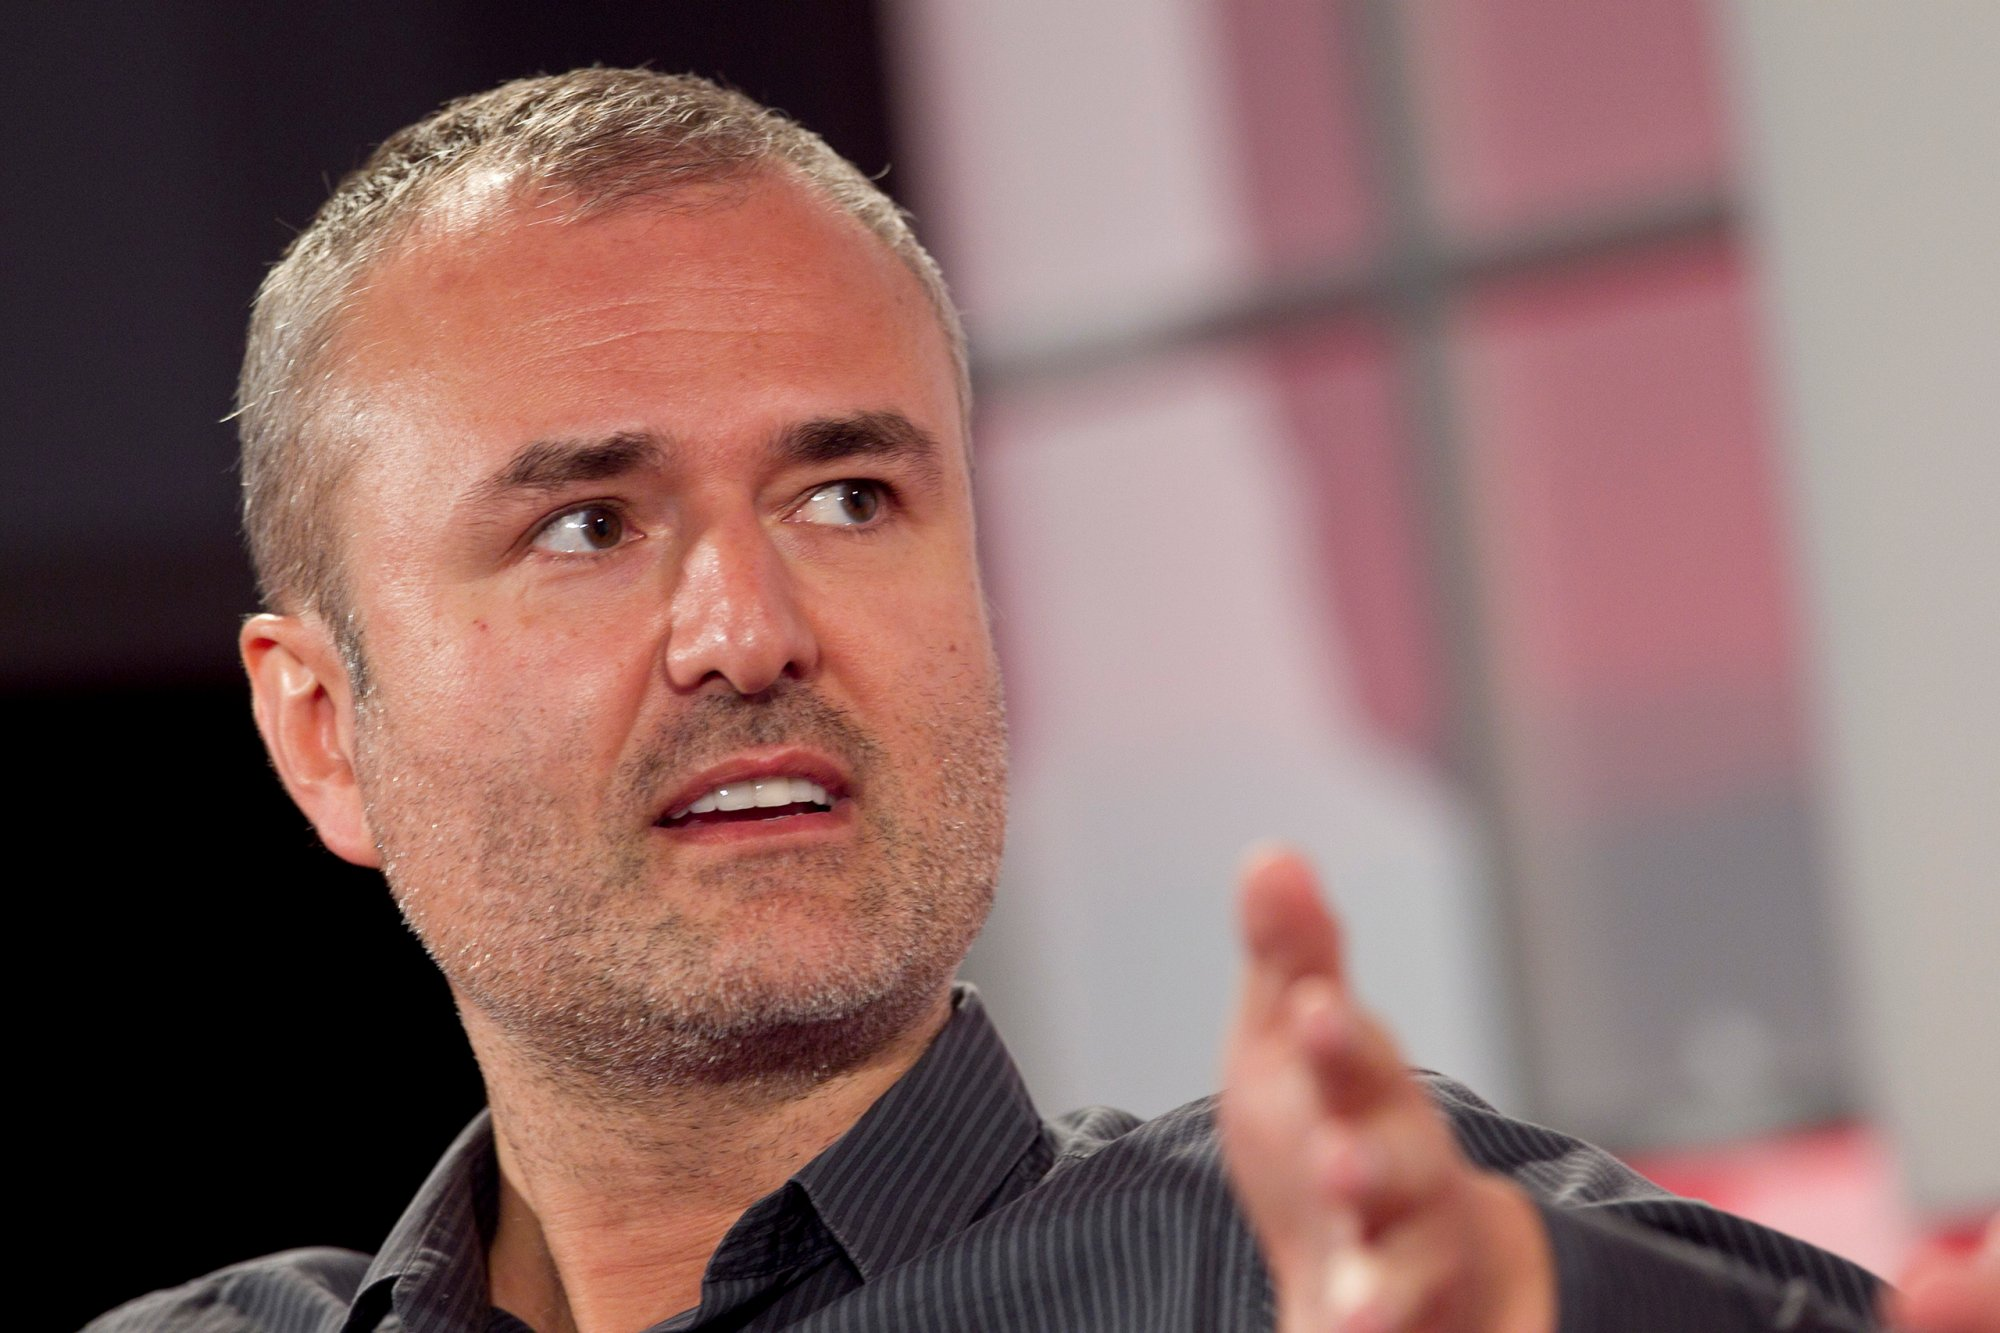 Gawker Media is filing for bankruptcy following $140 million Hulk Hogan lawsuit